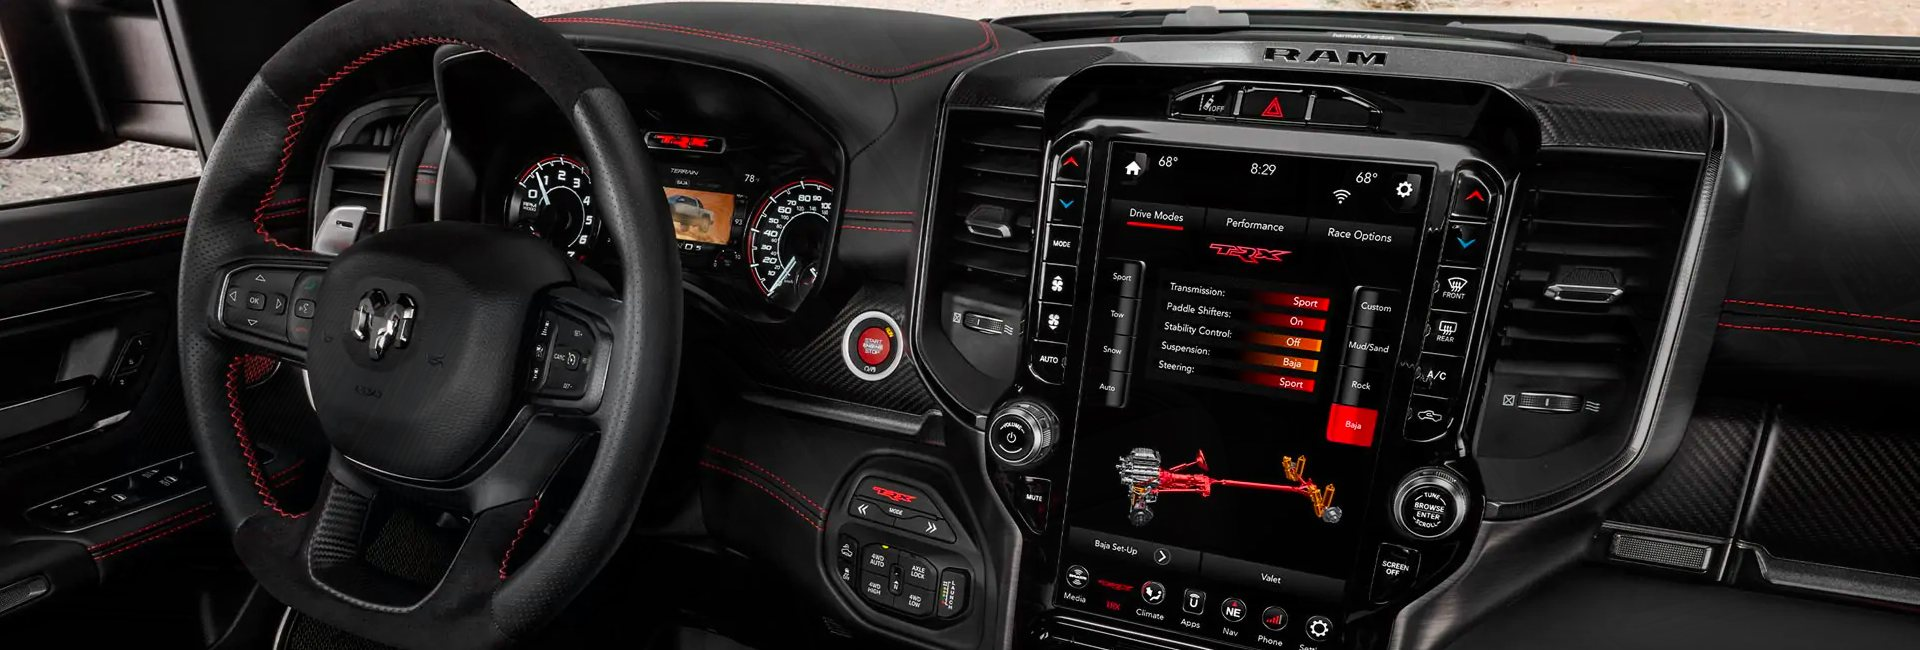 Full interior view of the Ram 1500 TRX parked